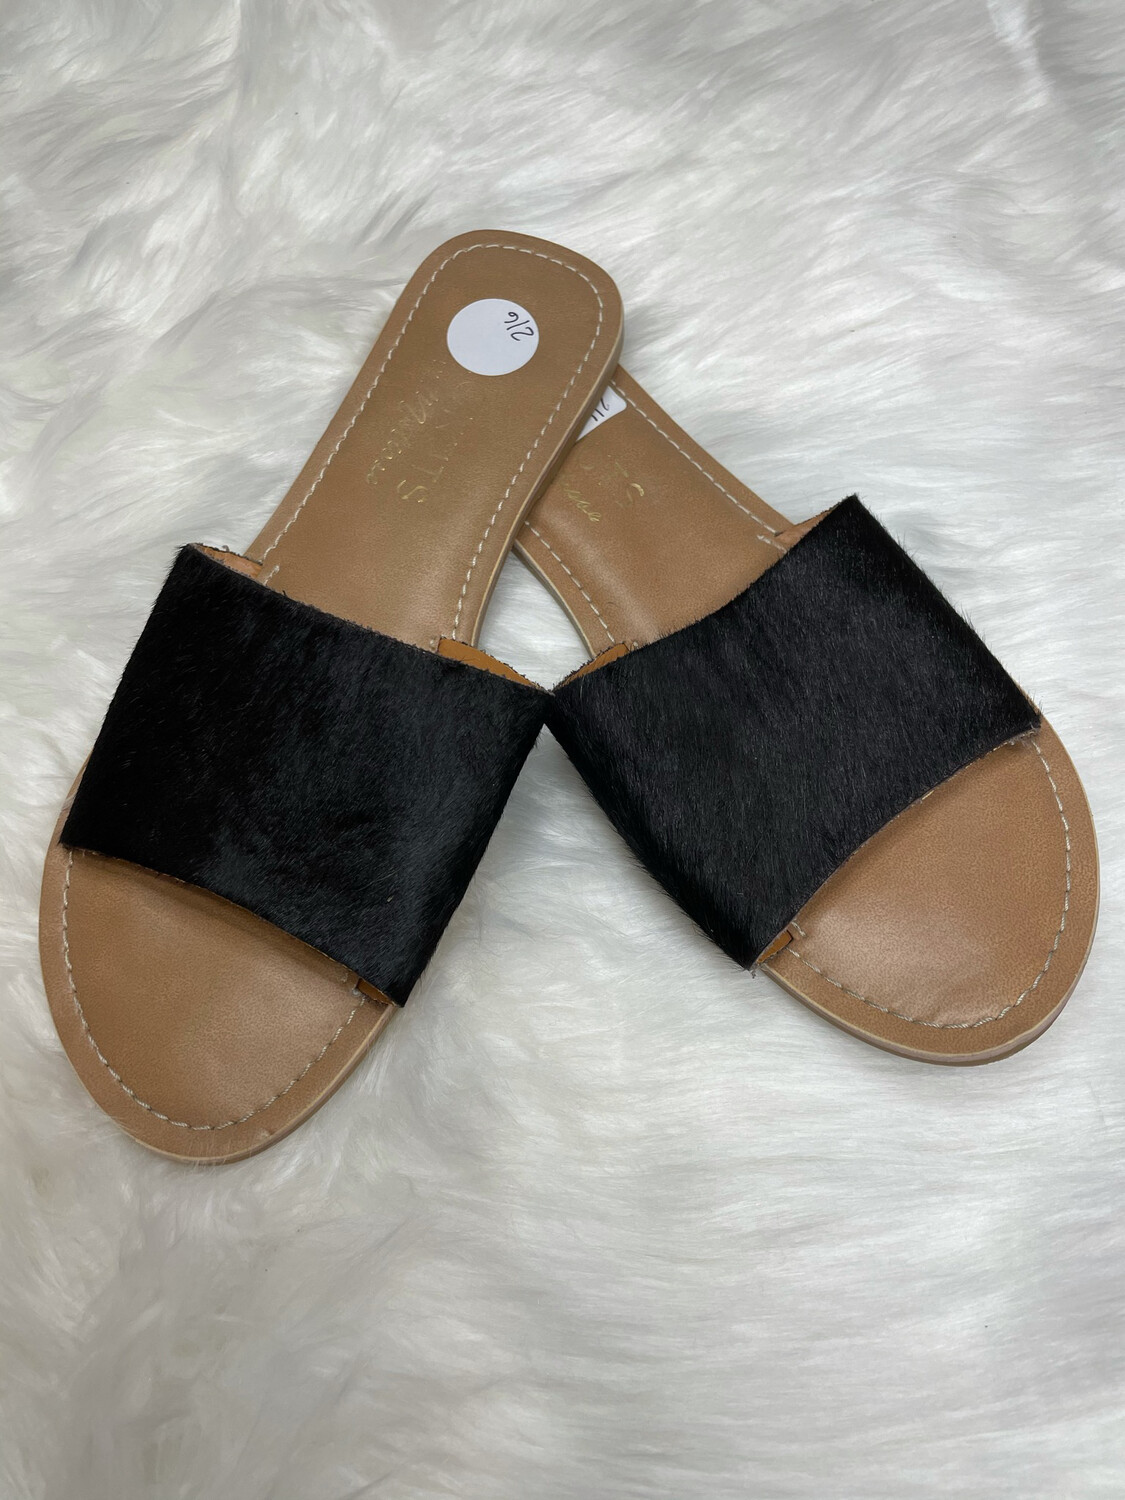 Coconuts by Matisse Black Calf Hair Slides - Size 8